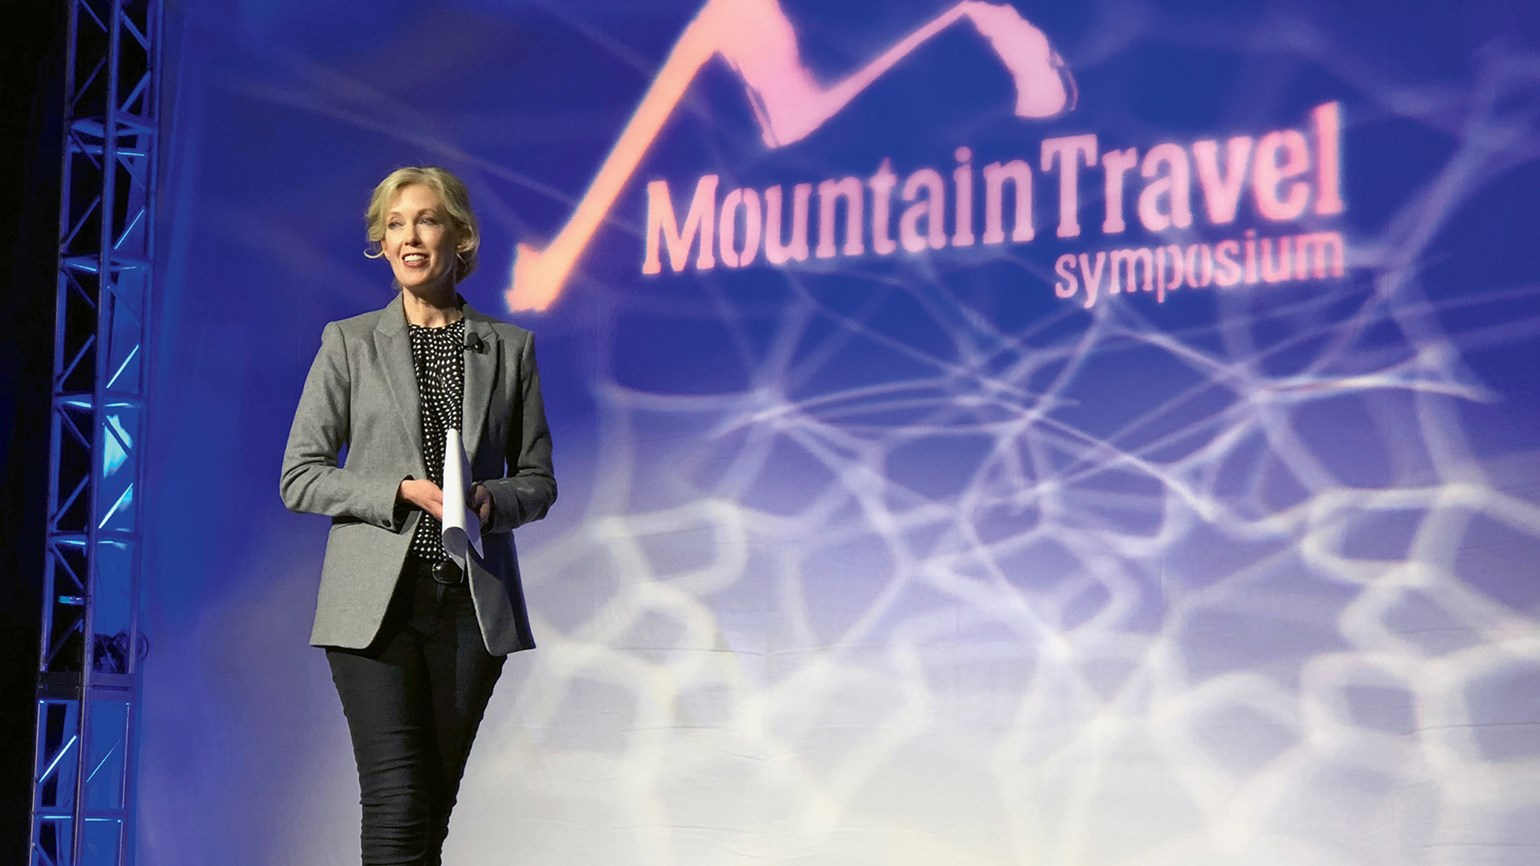 At MTS, ski resort execs say innovation key to meeting challenges